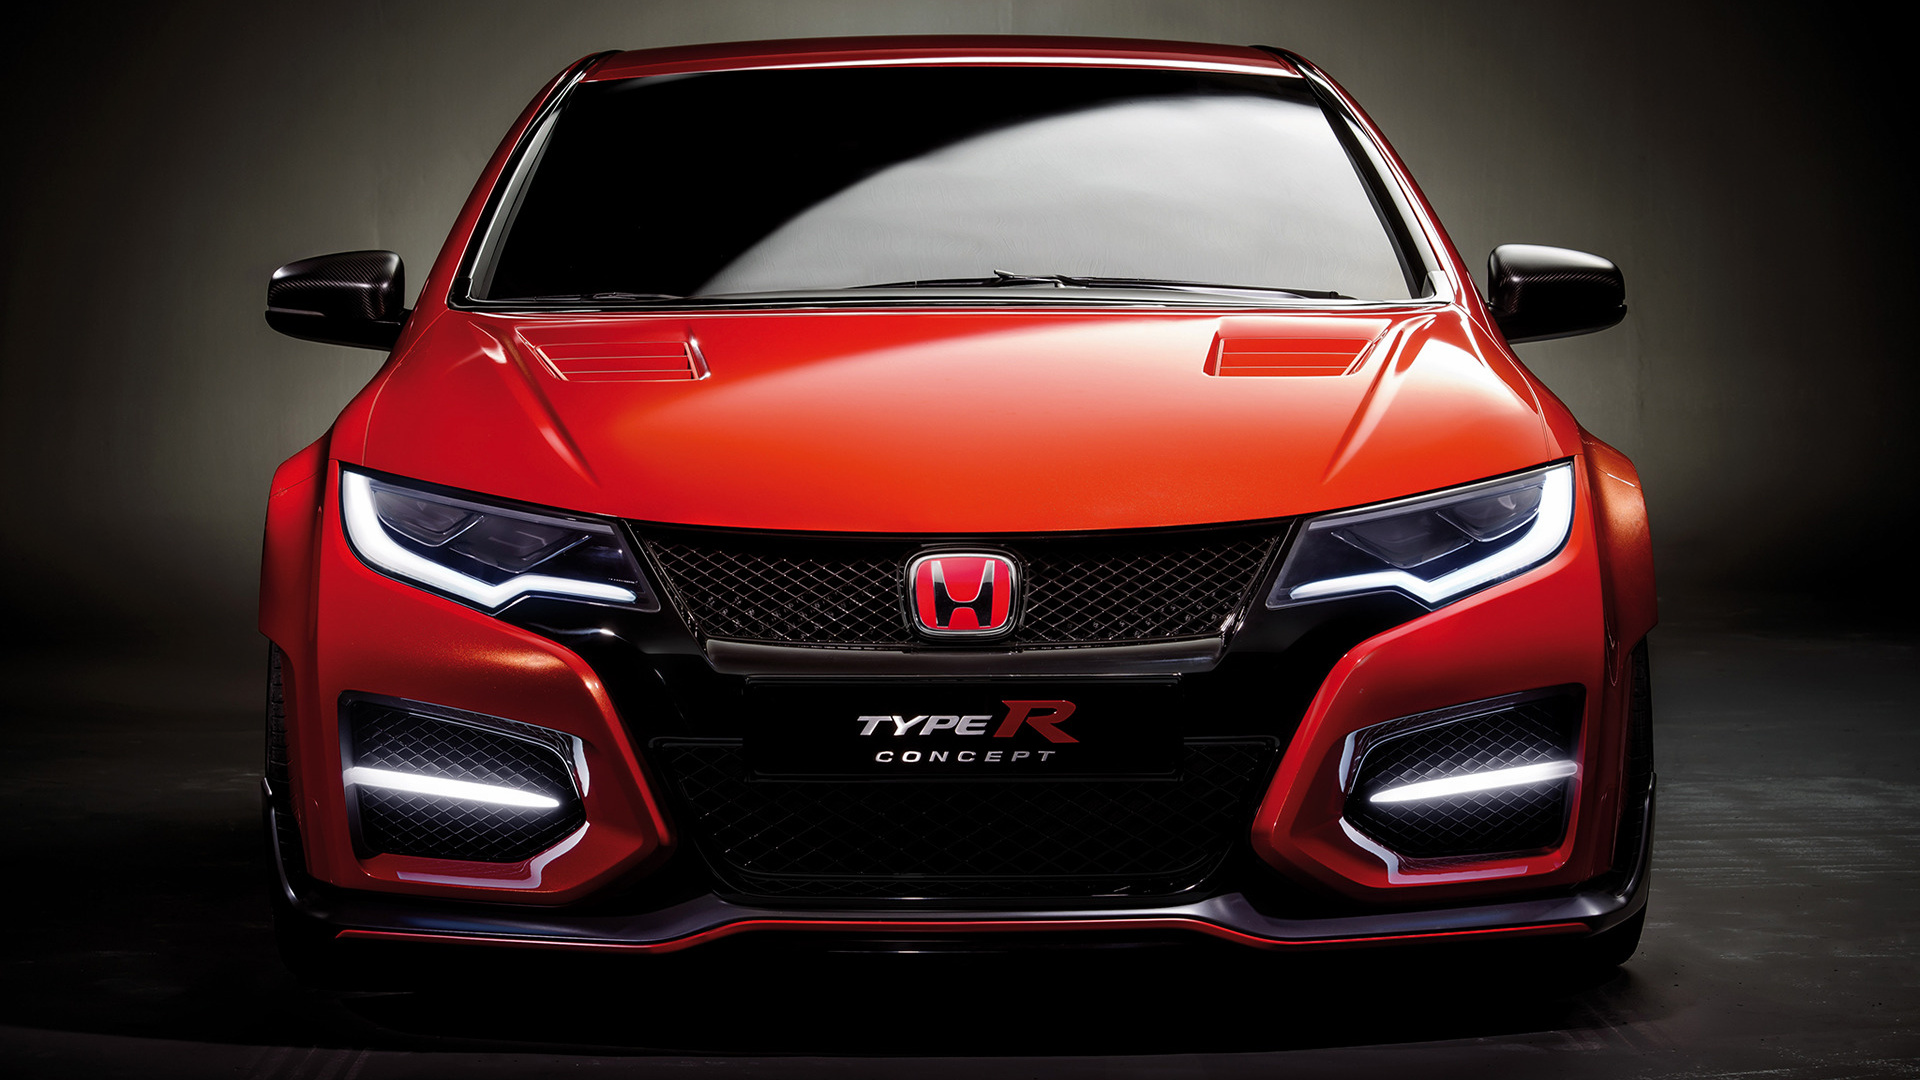 2014 Honda Civic Type R Concept - Wallpapers and HD Images ...